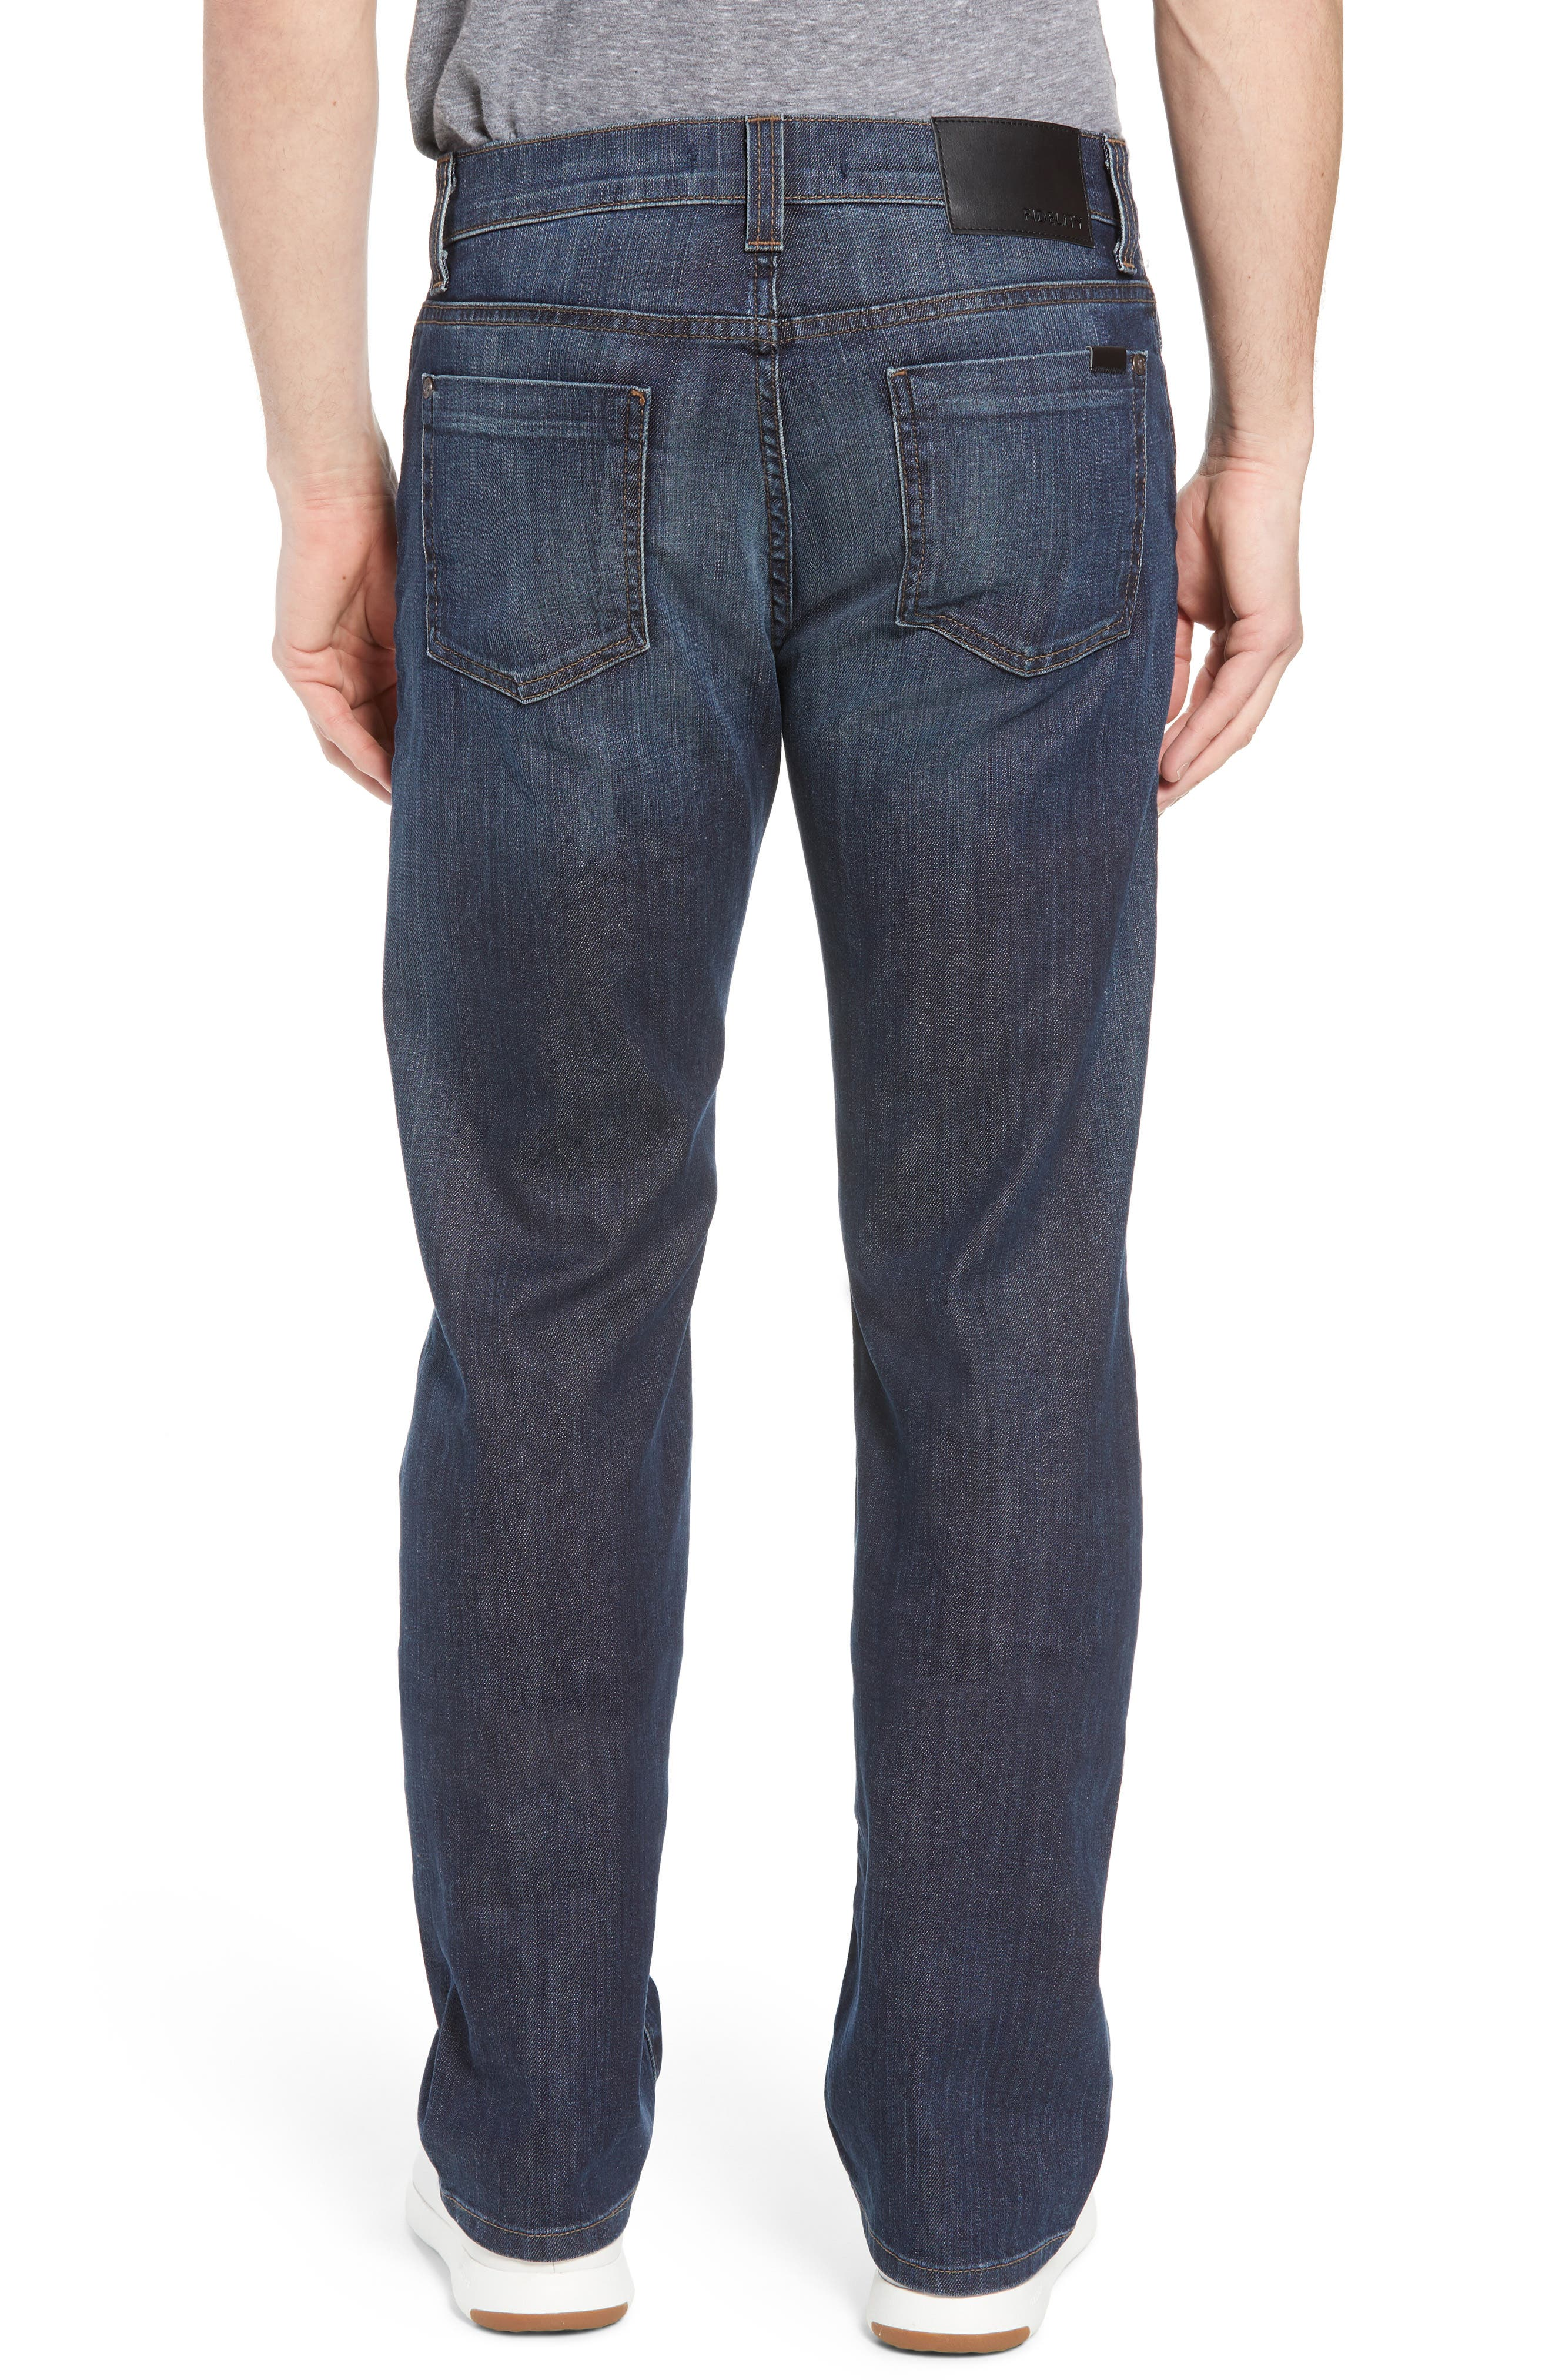 50-11 Relaxed Fit Jeans,                             Alternate thumbnail 2, color,                             Winwood Vintage